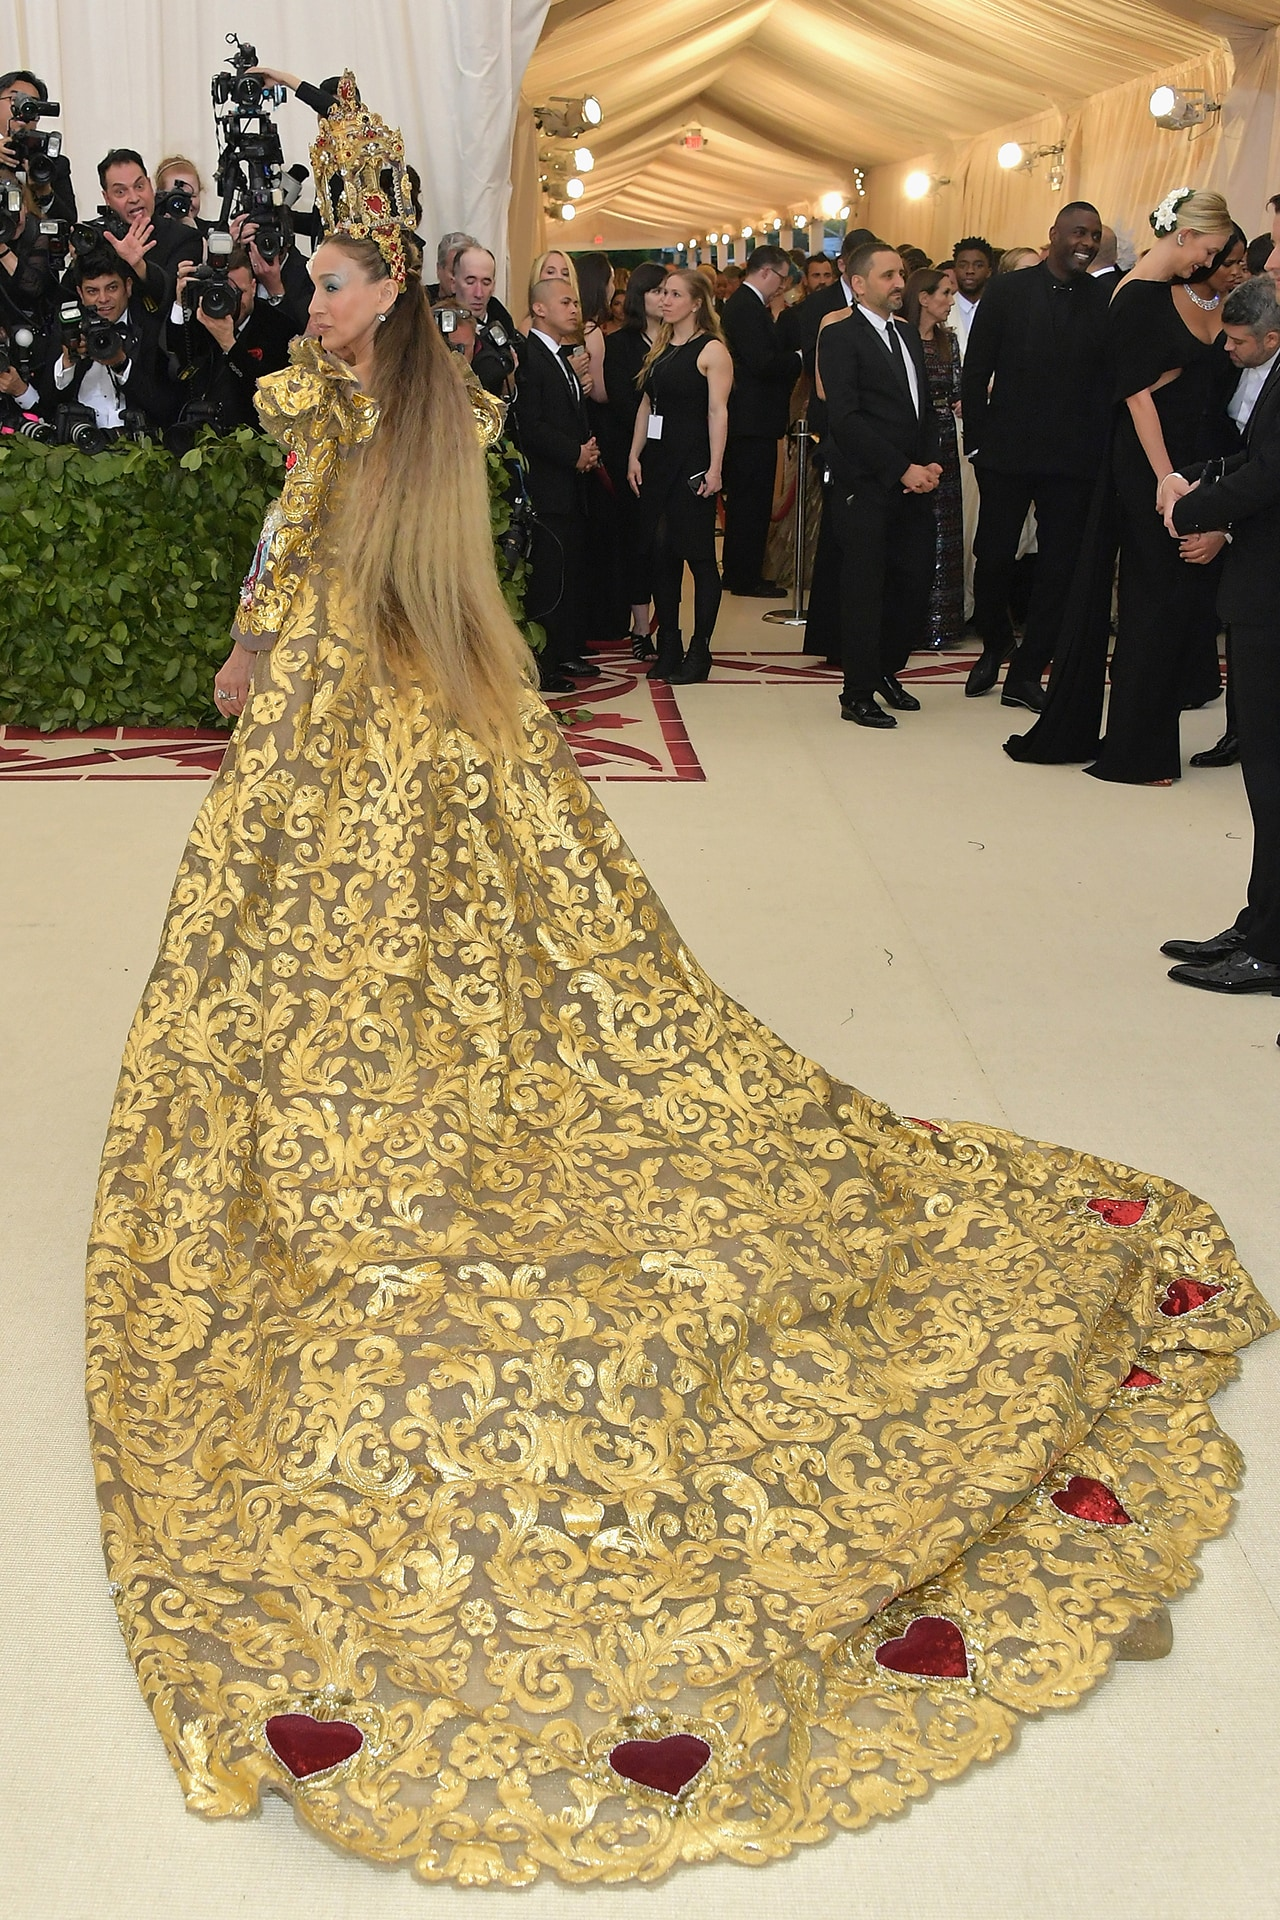 Sarah Jessica Parker at the Met Gala 2018 wearing Dolce & Gabbana. Image credit: Getty Images.